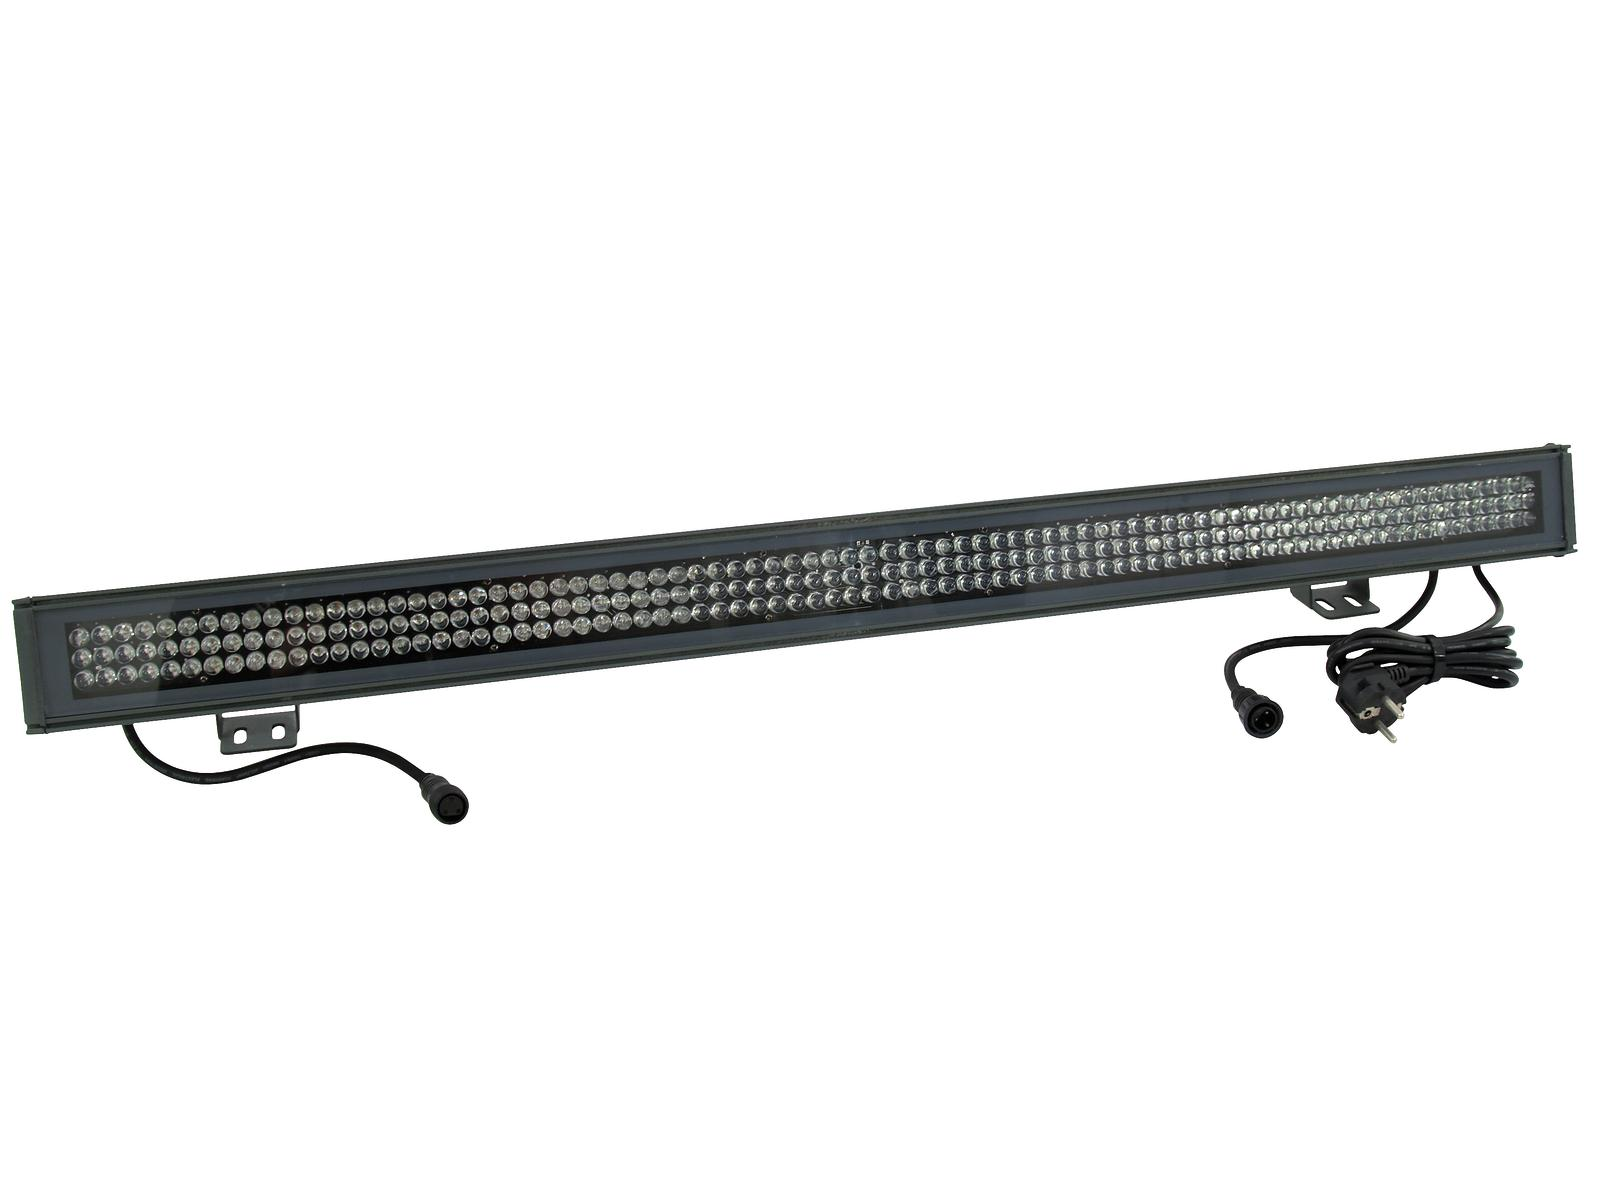 EUROLITE LED IP T1000 RGB 10mm